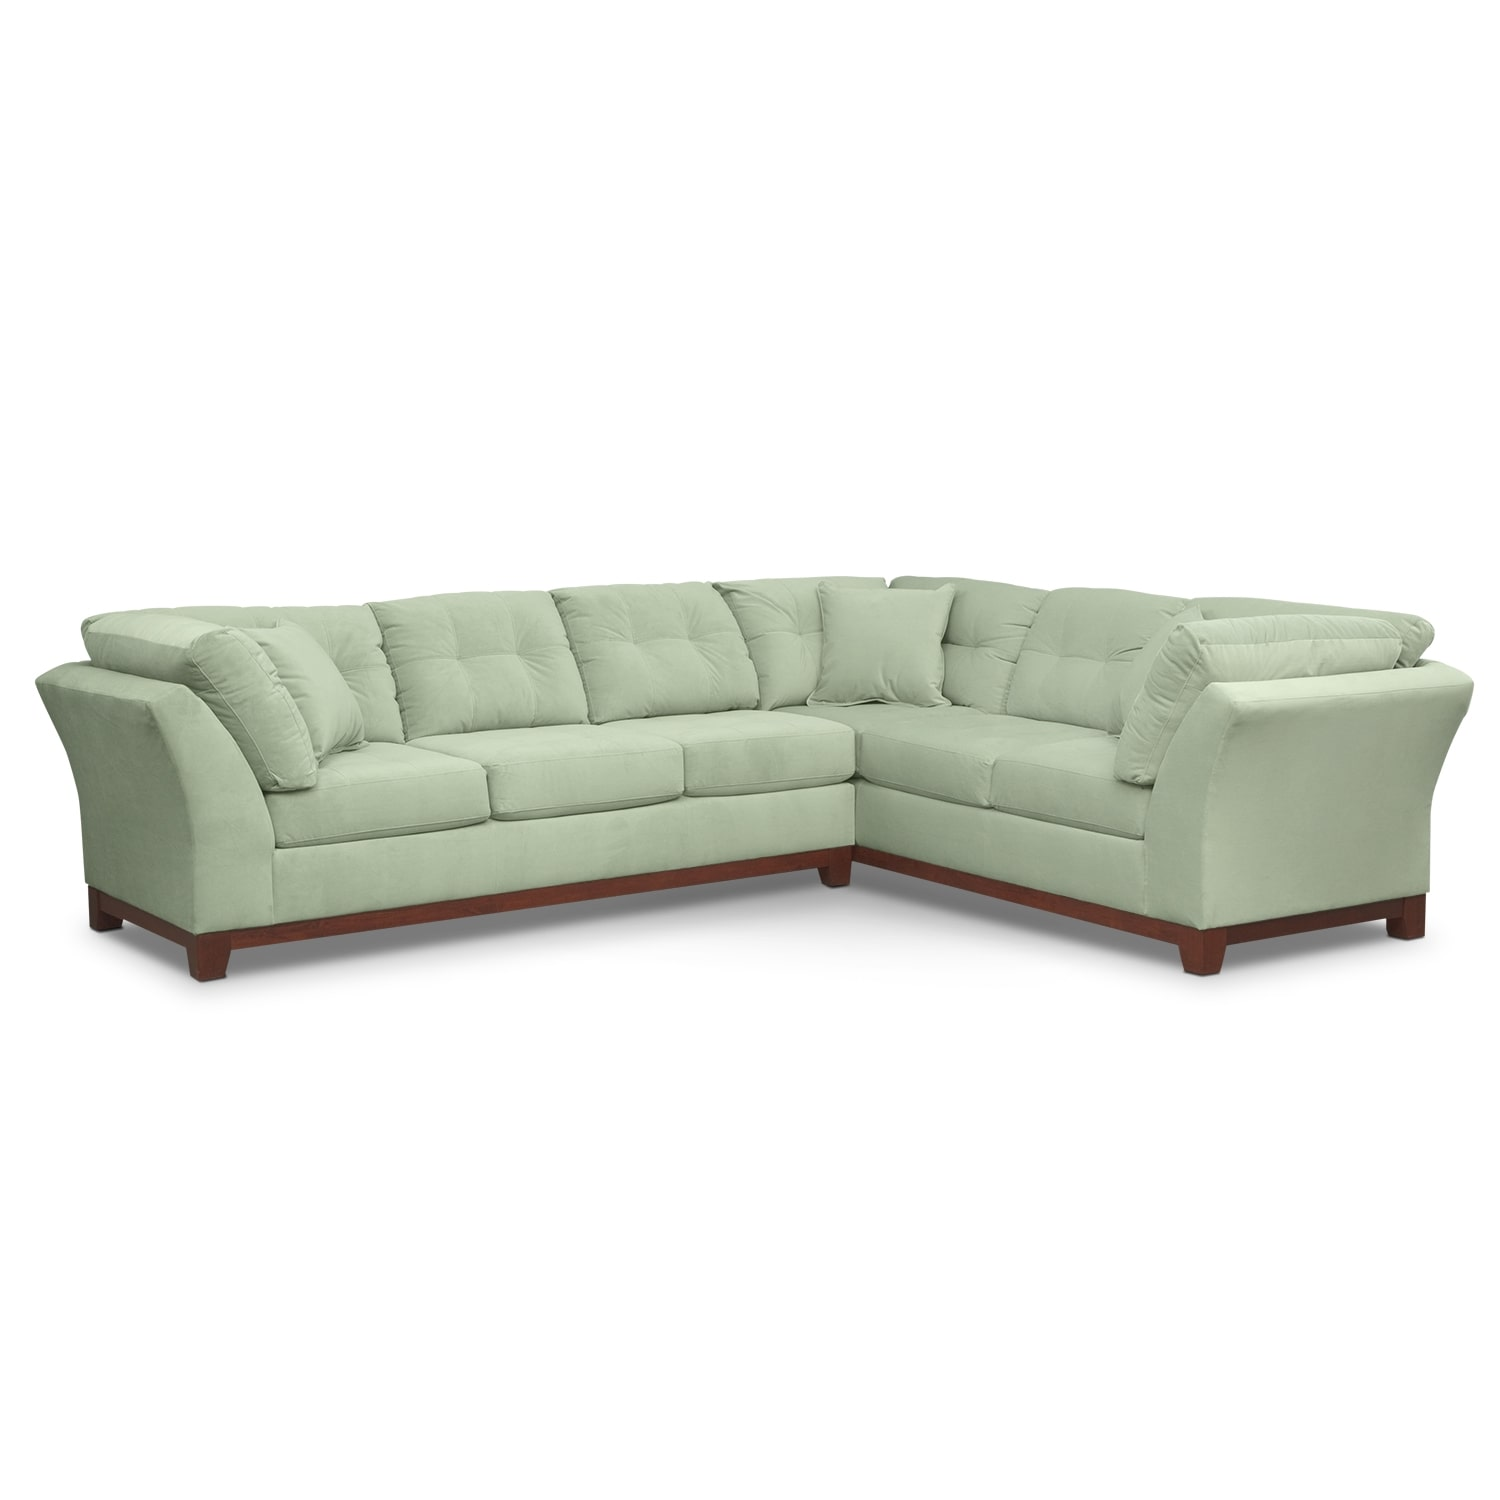 "Solace 2-Piece Left-Facing 132"" Sofa Sectional - Spa"